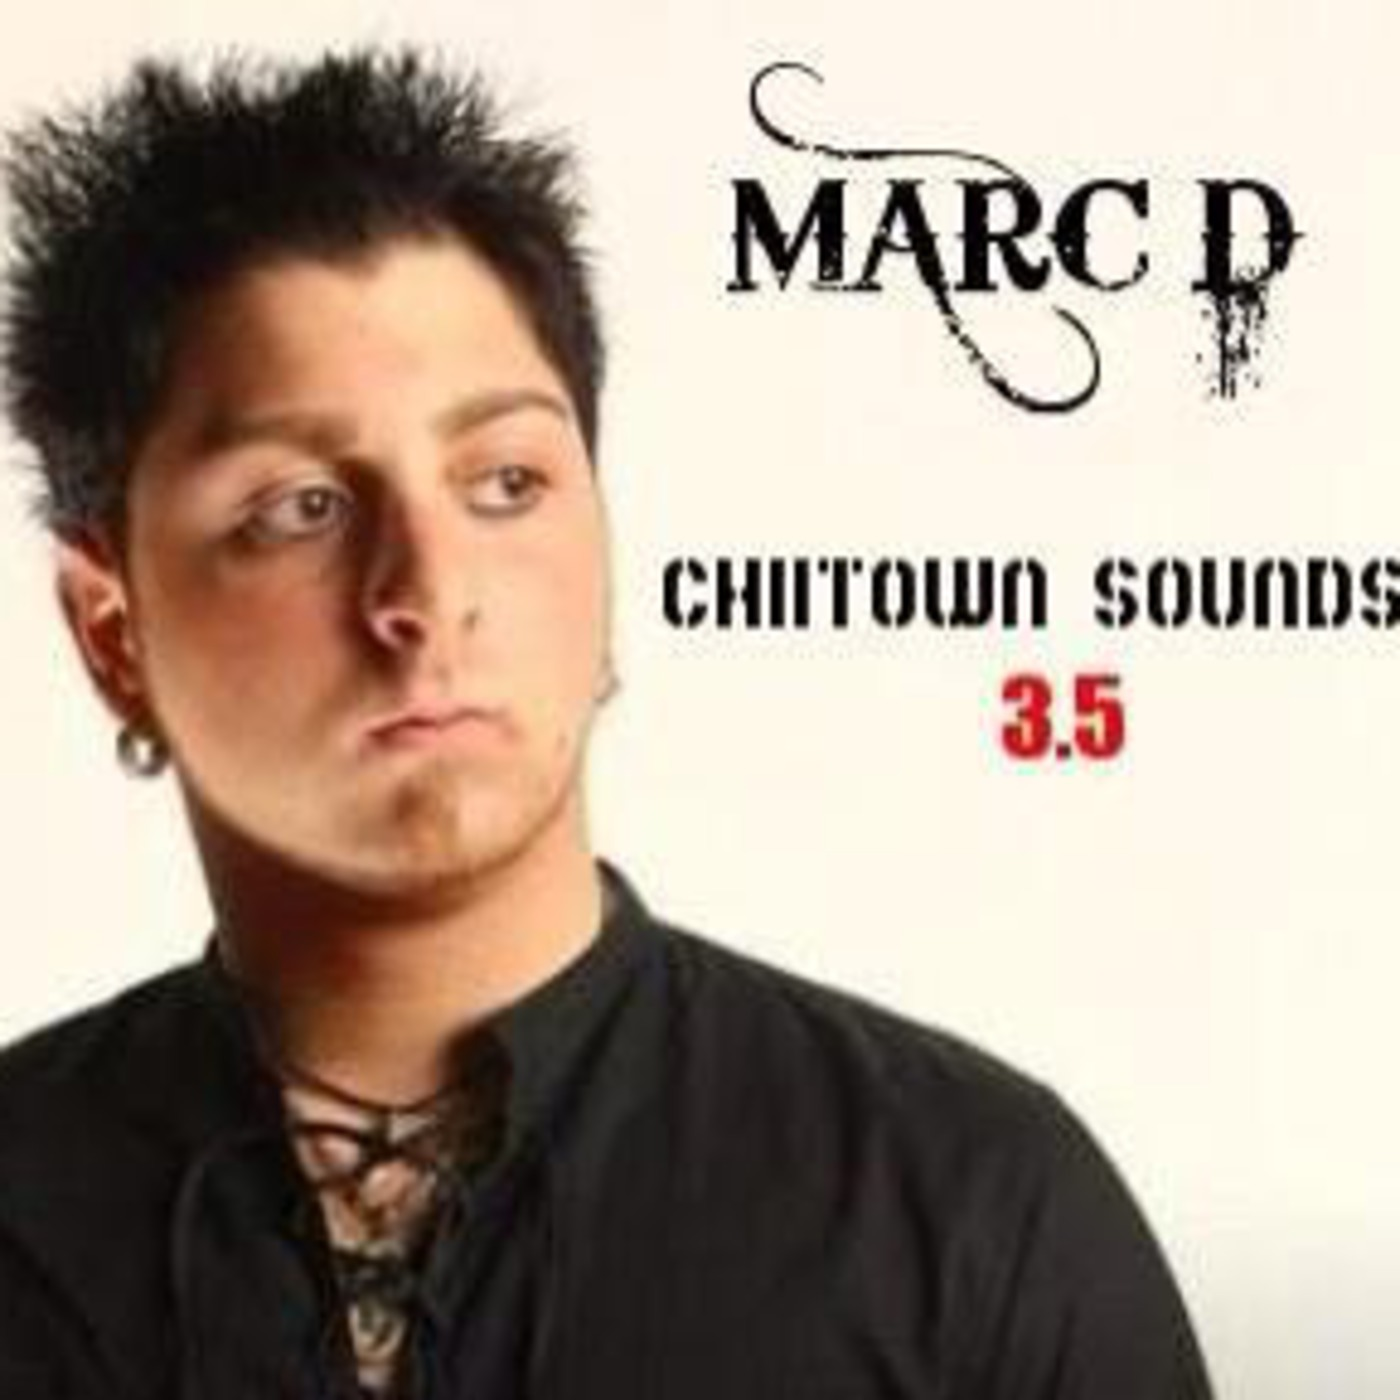 CHiiTOWN SOUNDS 3.5